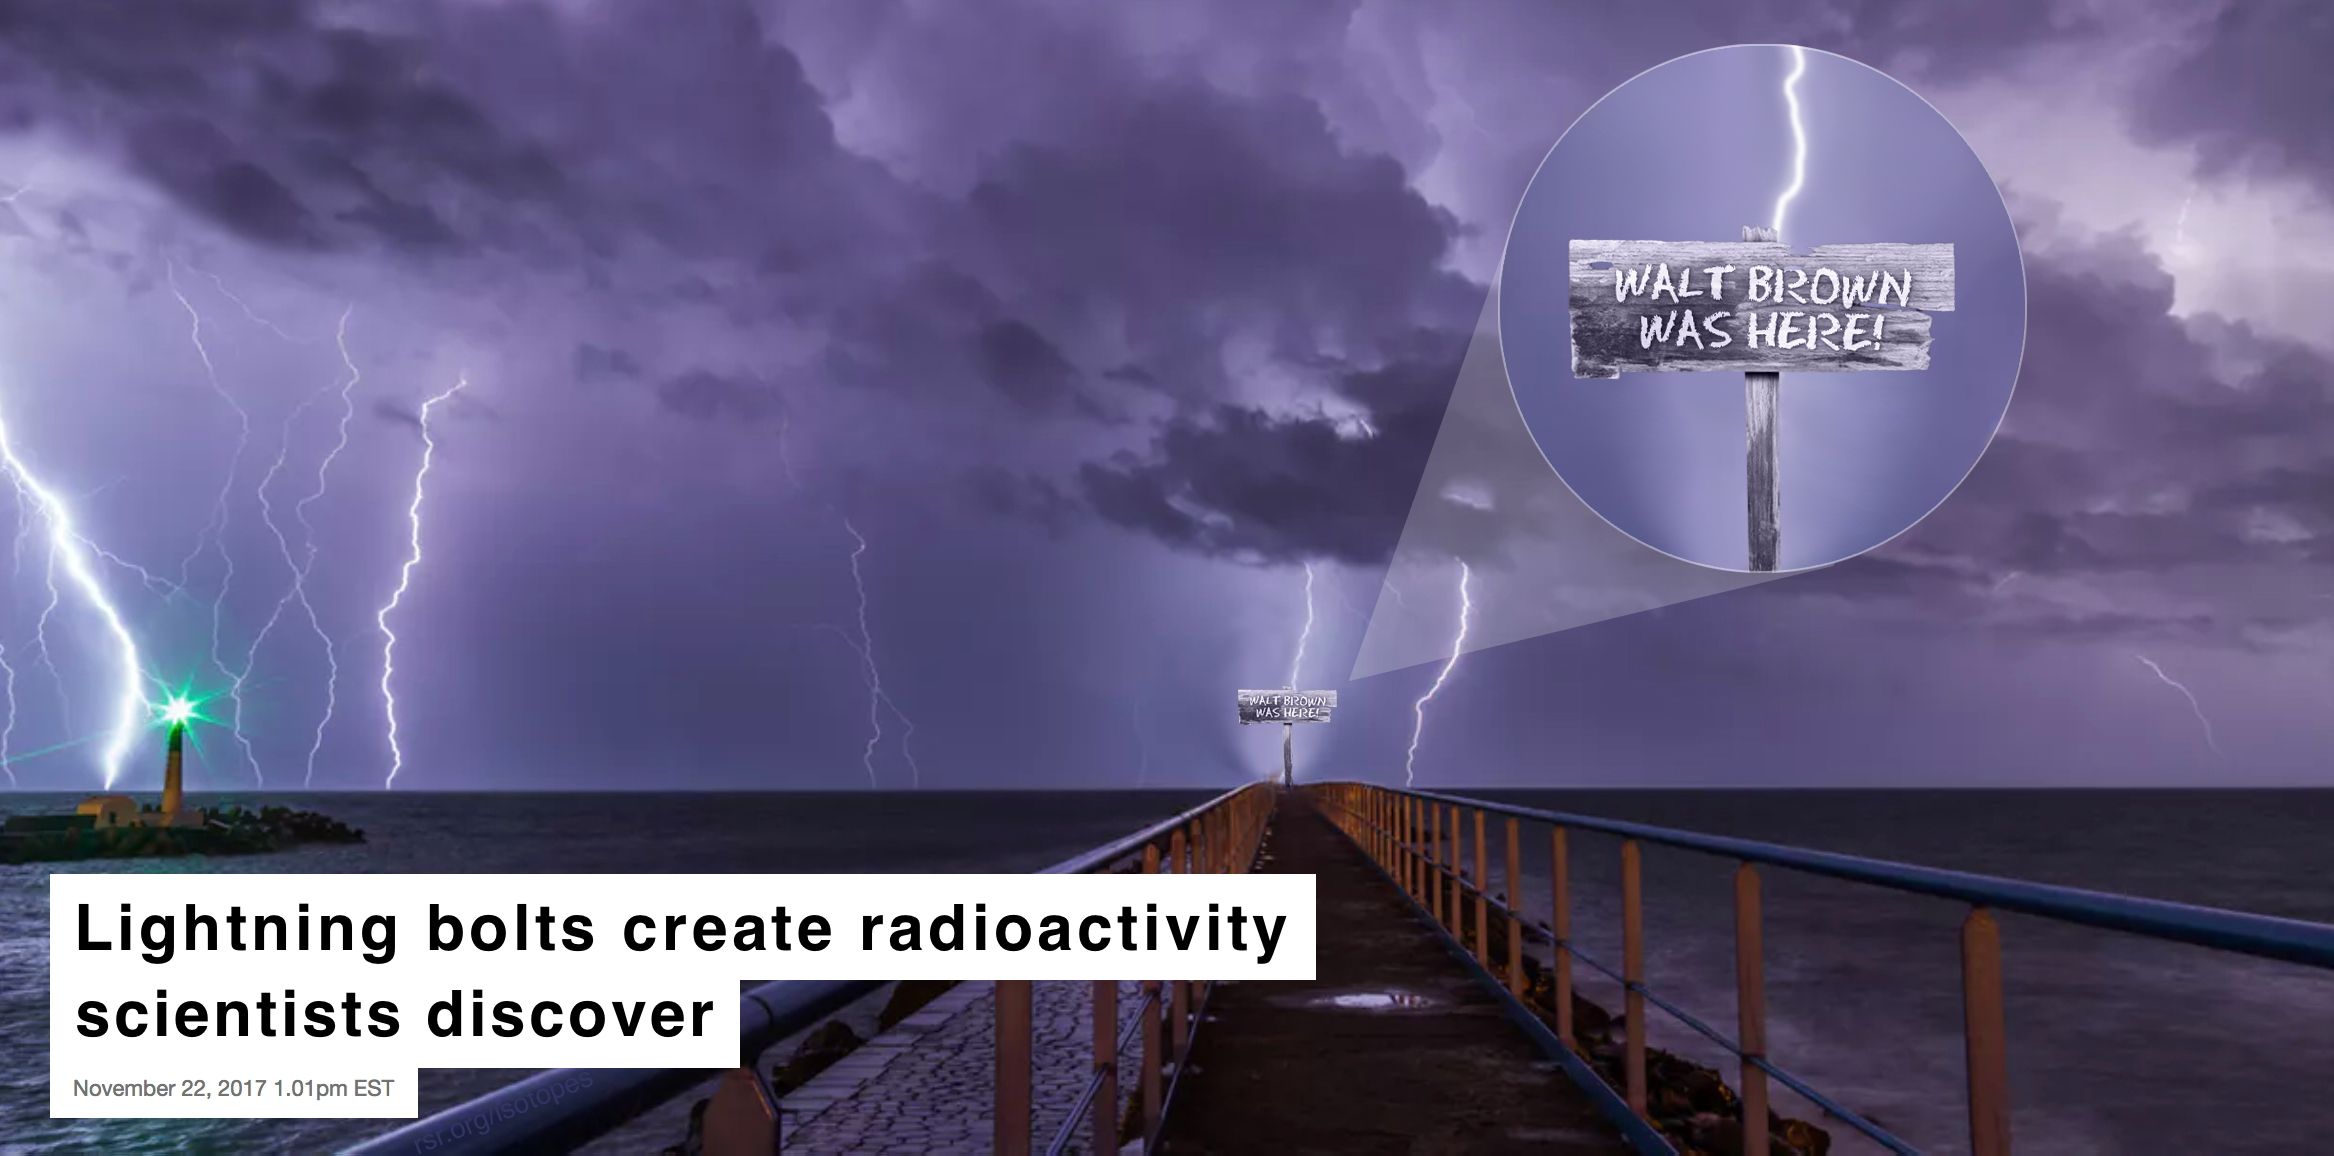 """Walt Brown  was here"" sign on pier during lightning strike as scientists discover lightning produces radioisotopes"